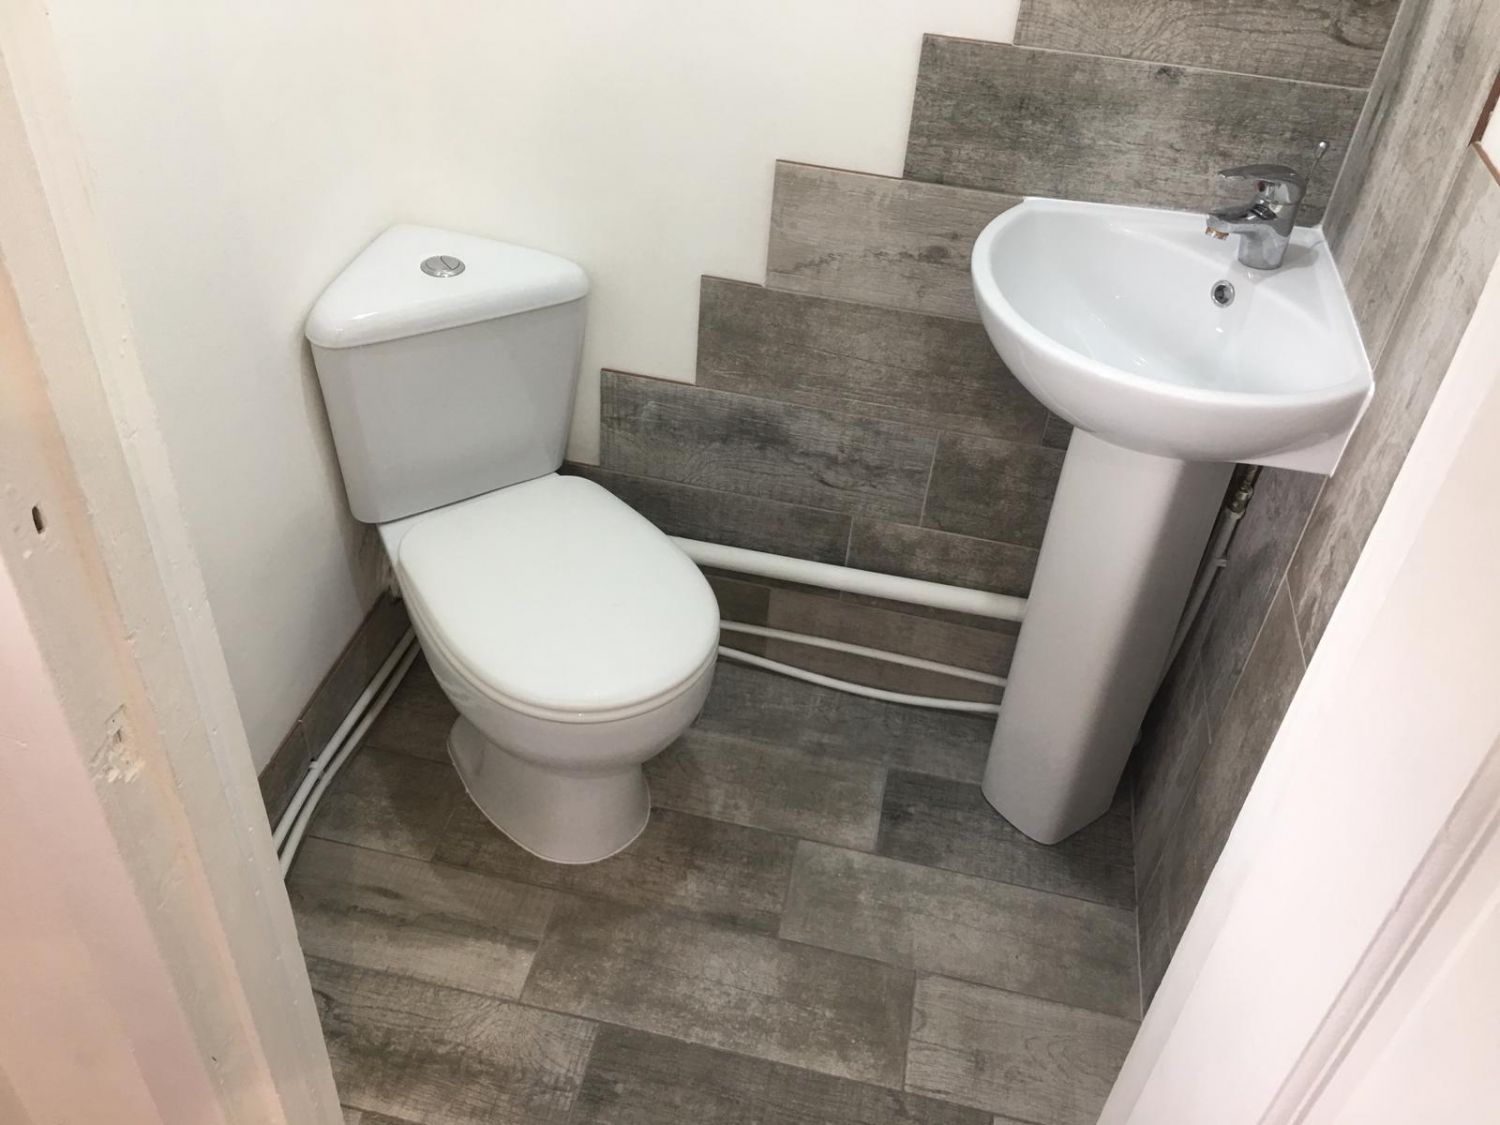 17 West Lane, Cowdenbeath Downstairs Toilet